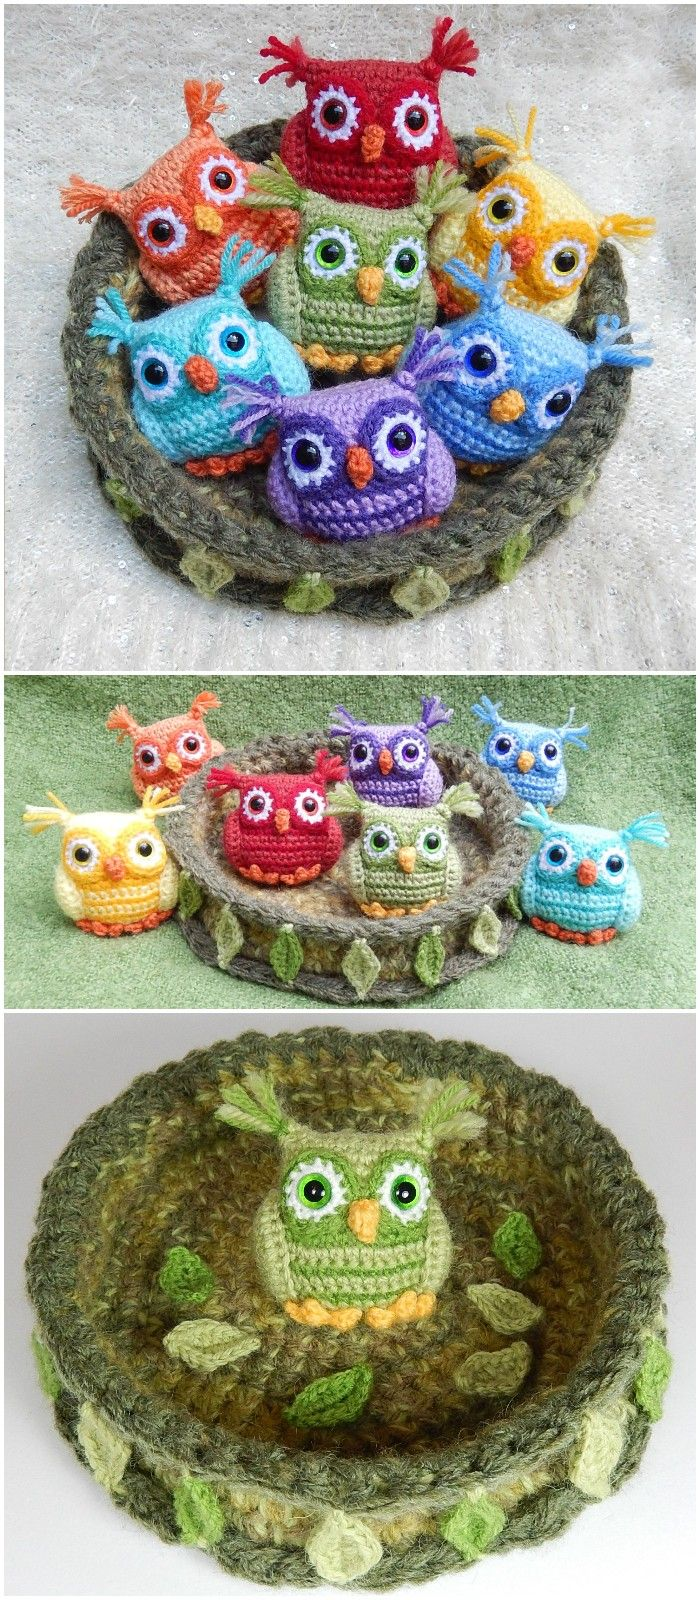 The 25 best crochet owls ideas on pinterest crochet owl i have ghathered 20 crochet owl patterns how to crochet owl patterns that wil realli inspire you bankloansurffo Gallery